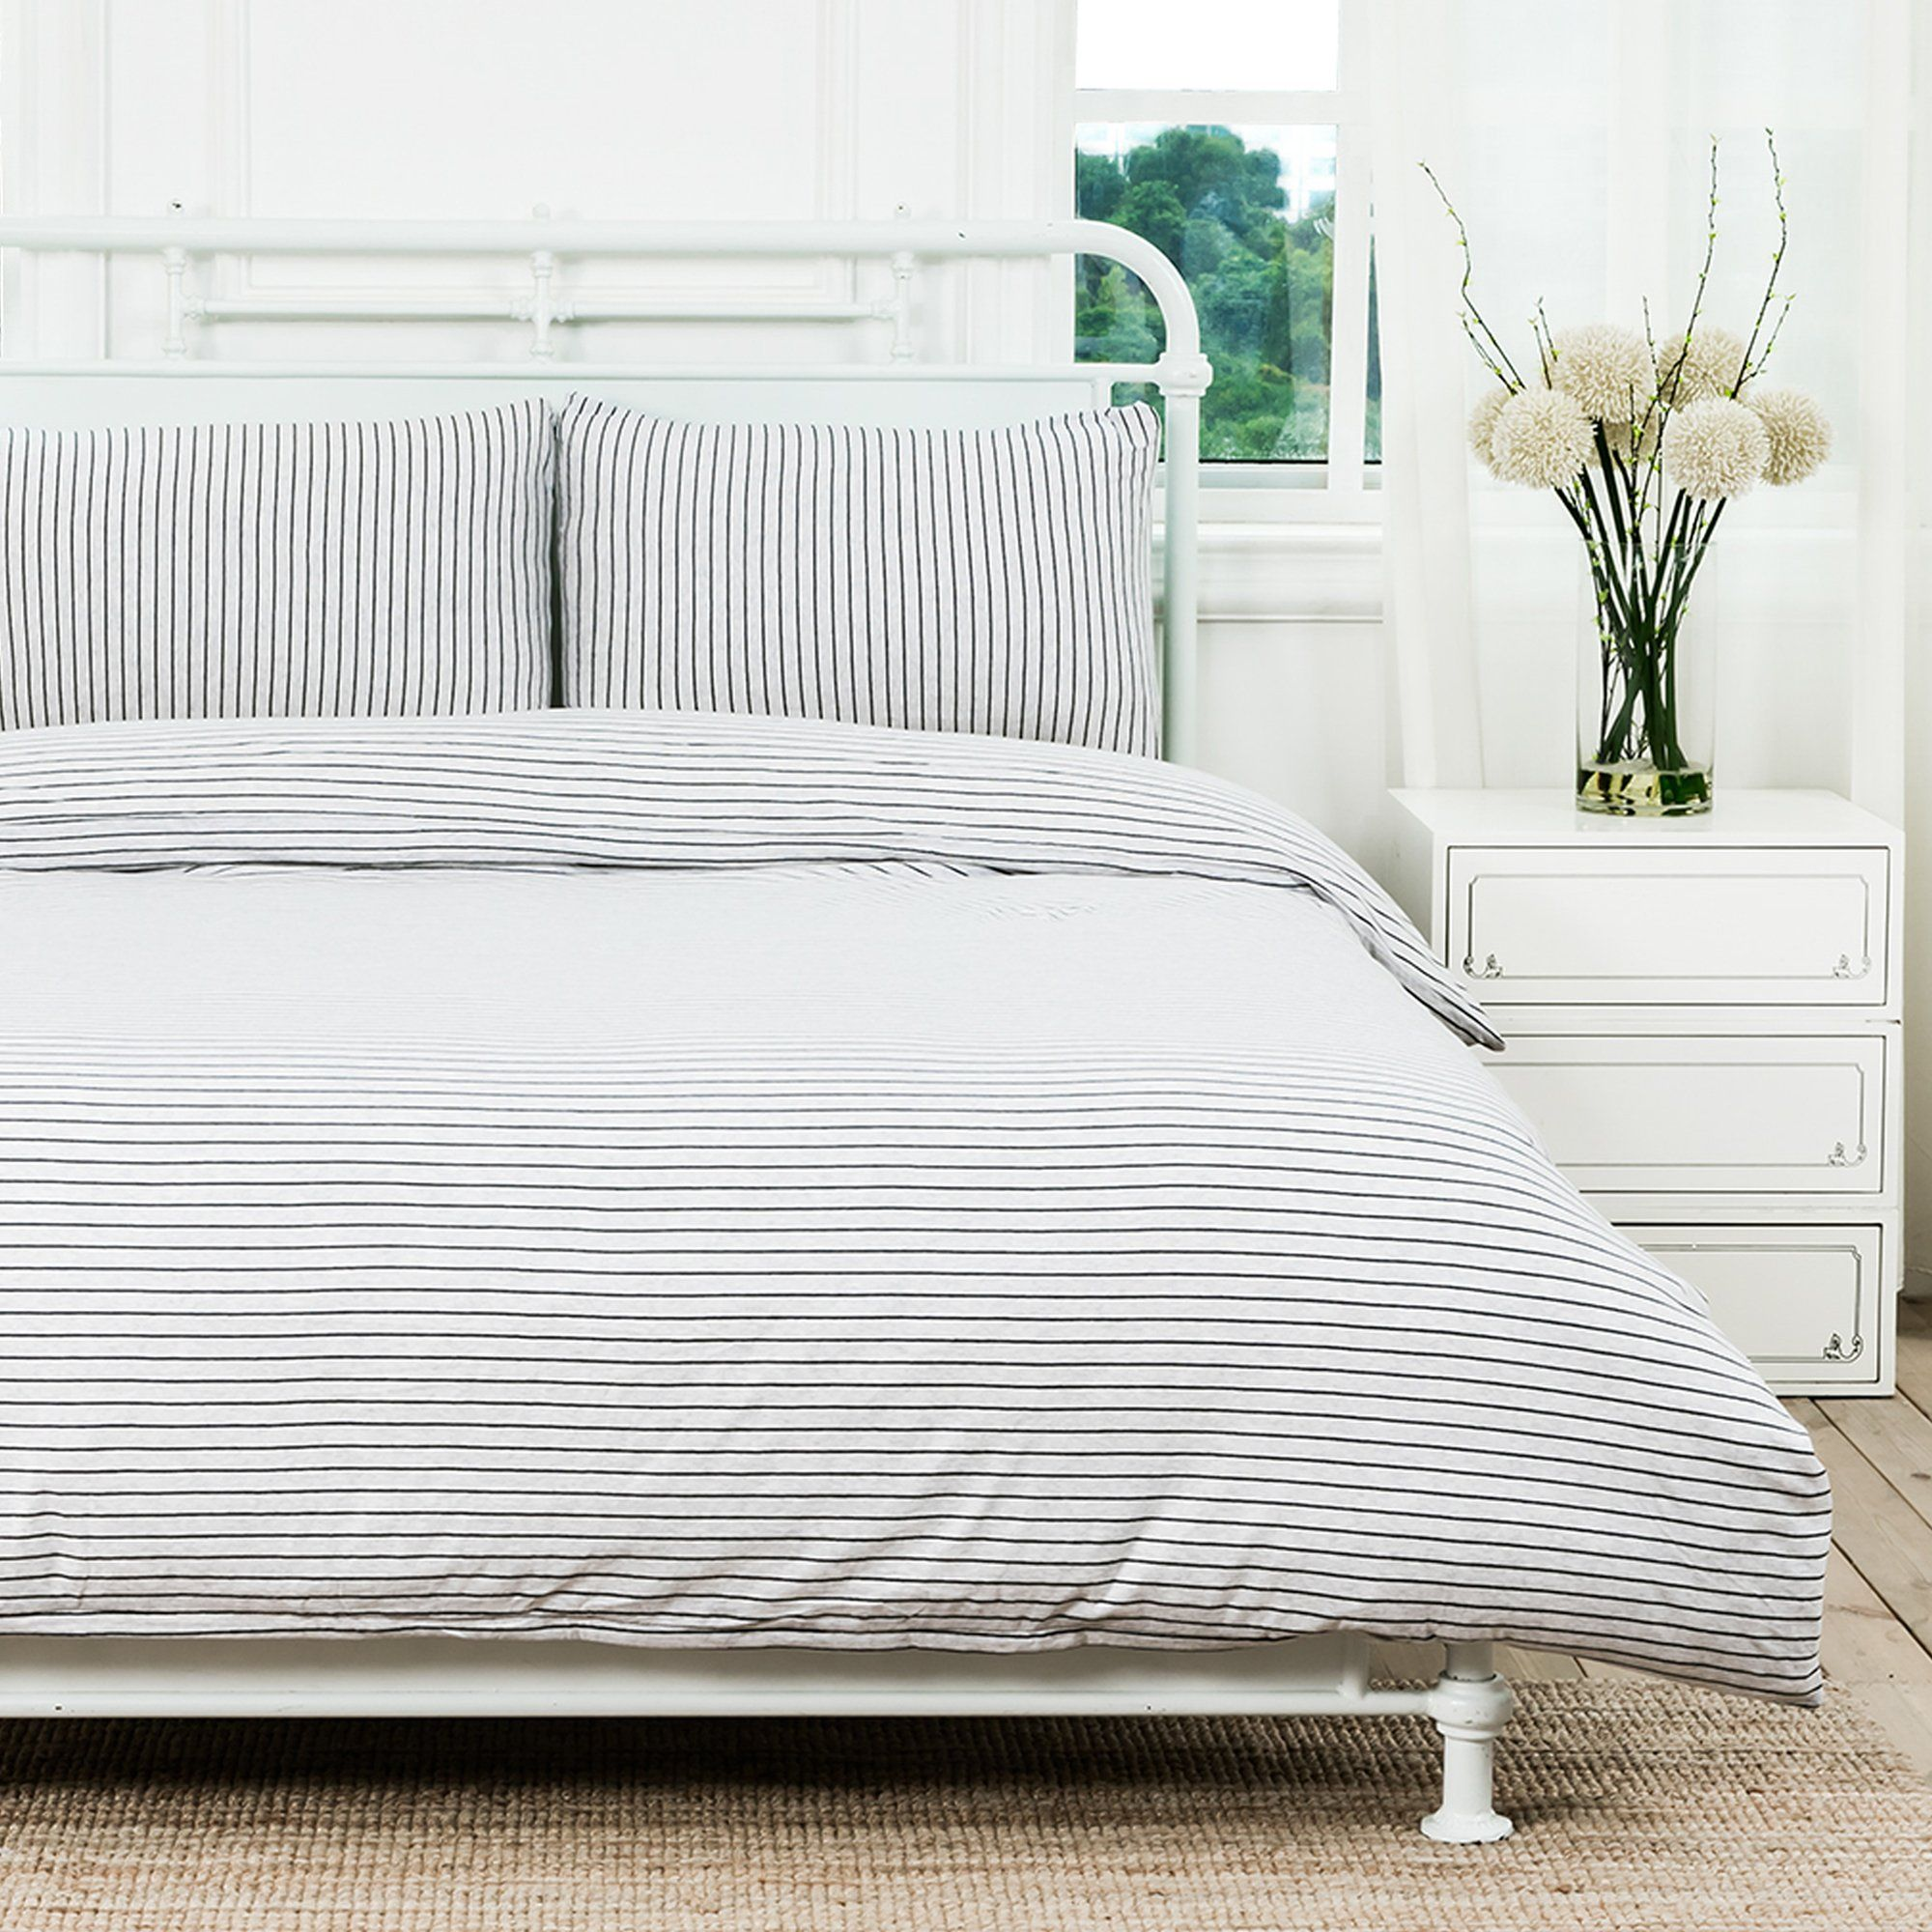 Pure Era Duvet Cover Set Jersey Knit Cotton 1 Comforter Cover And